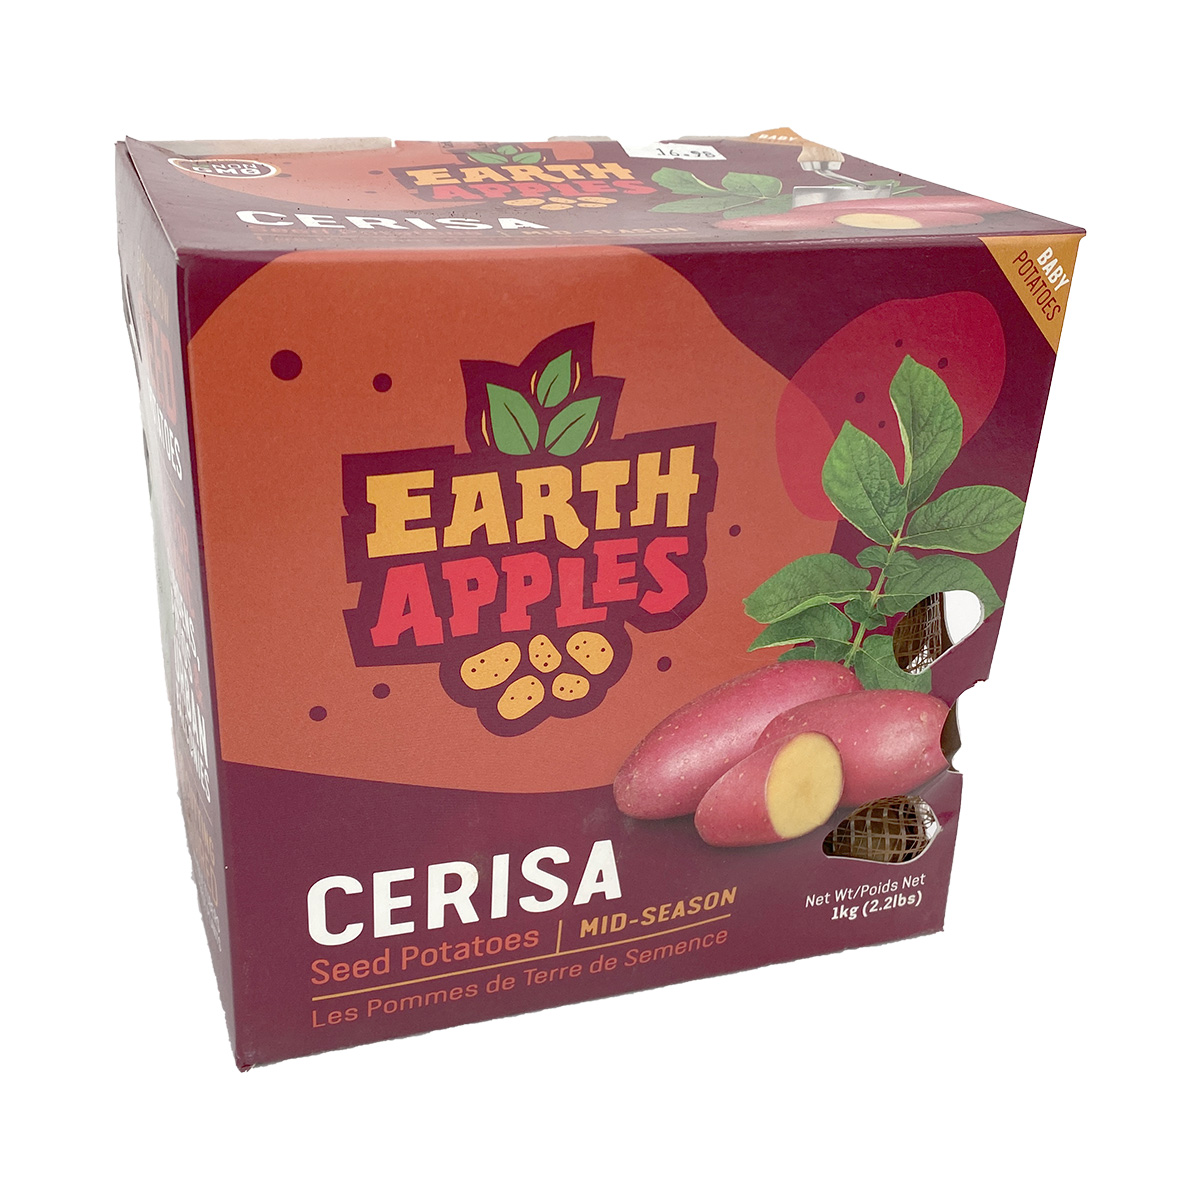 Cerisa_EarthApples.jpg